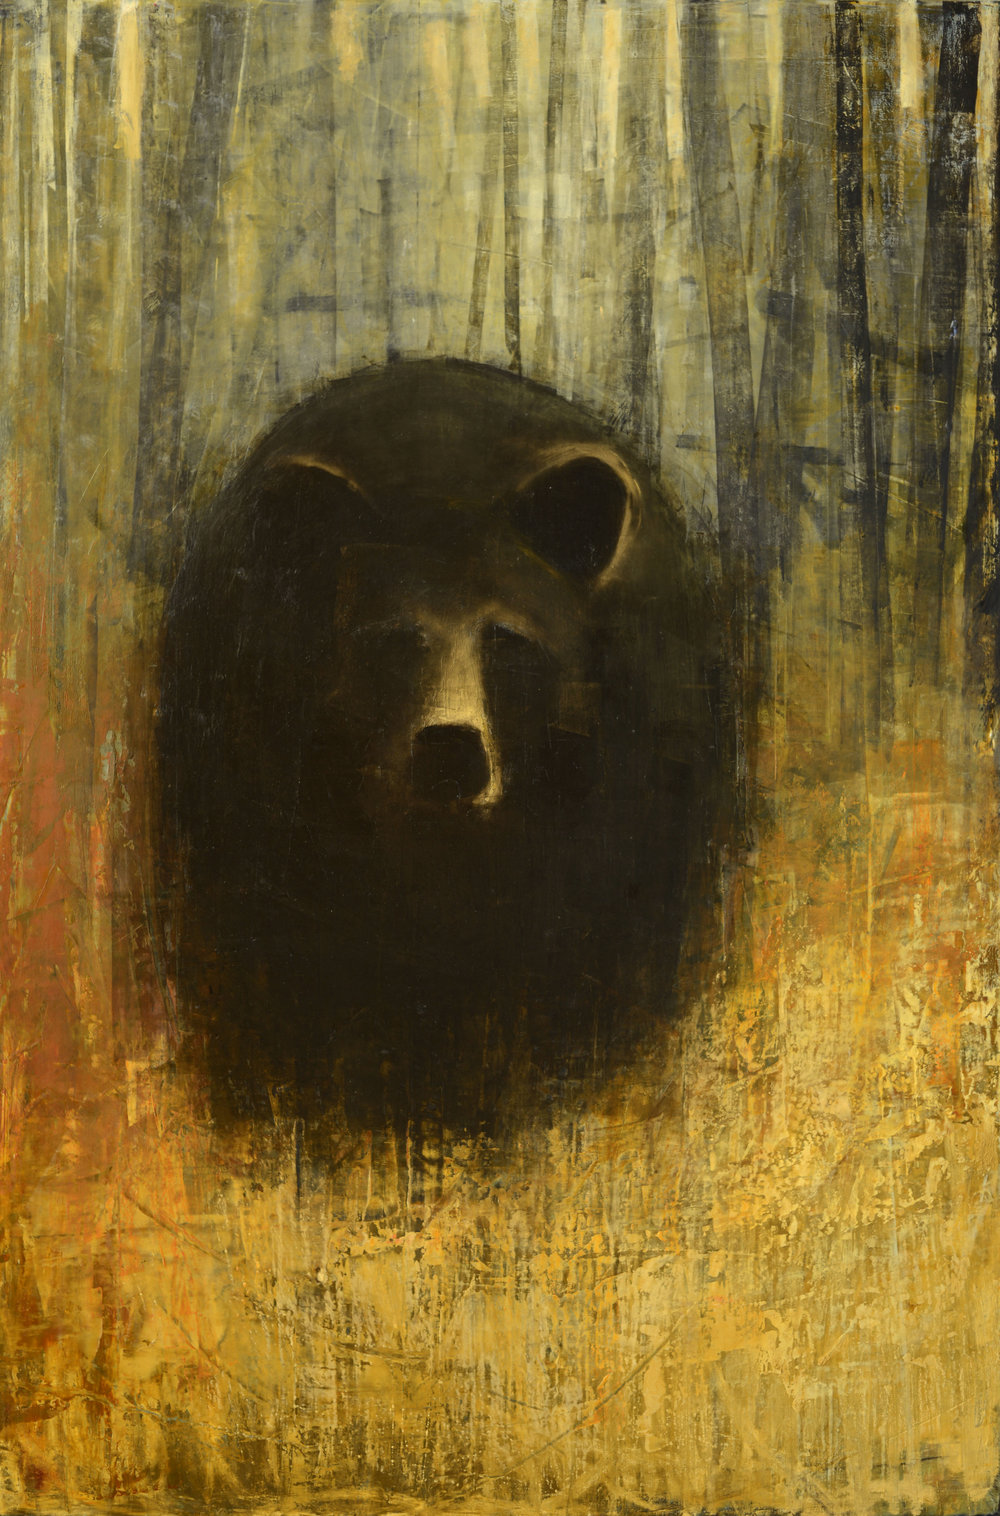 Black+Bear+(Golden+Field)_60x40.jpg